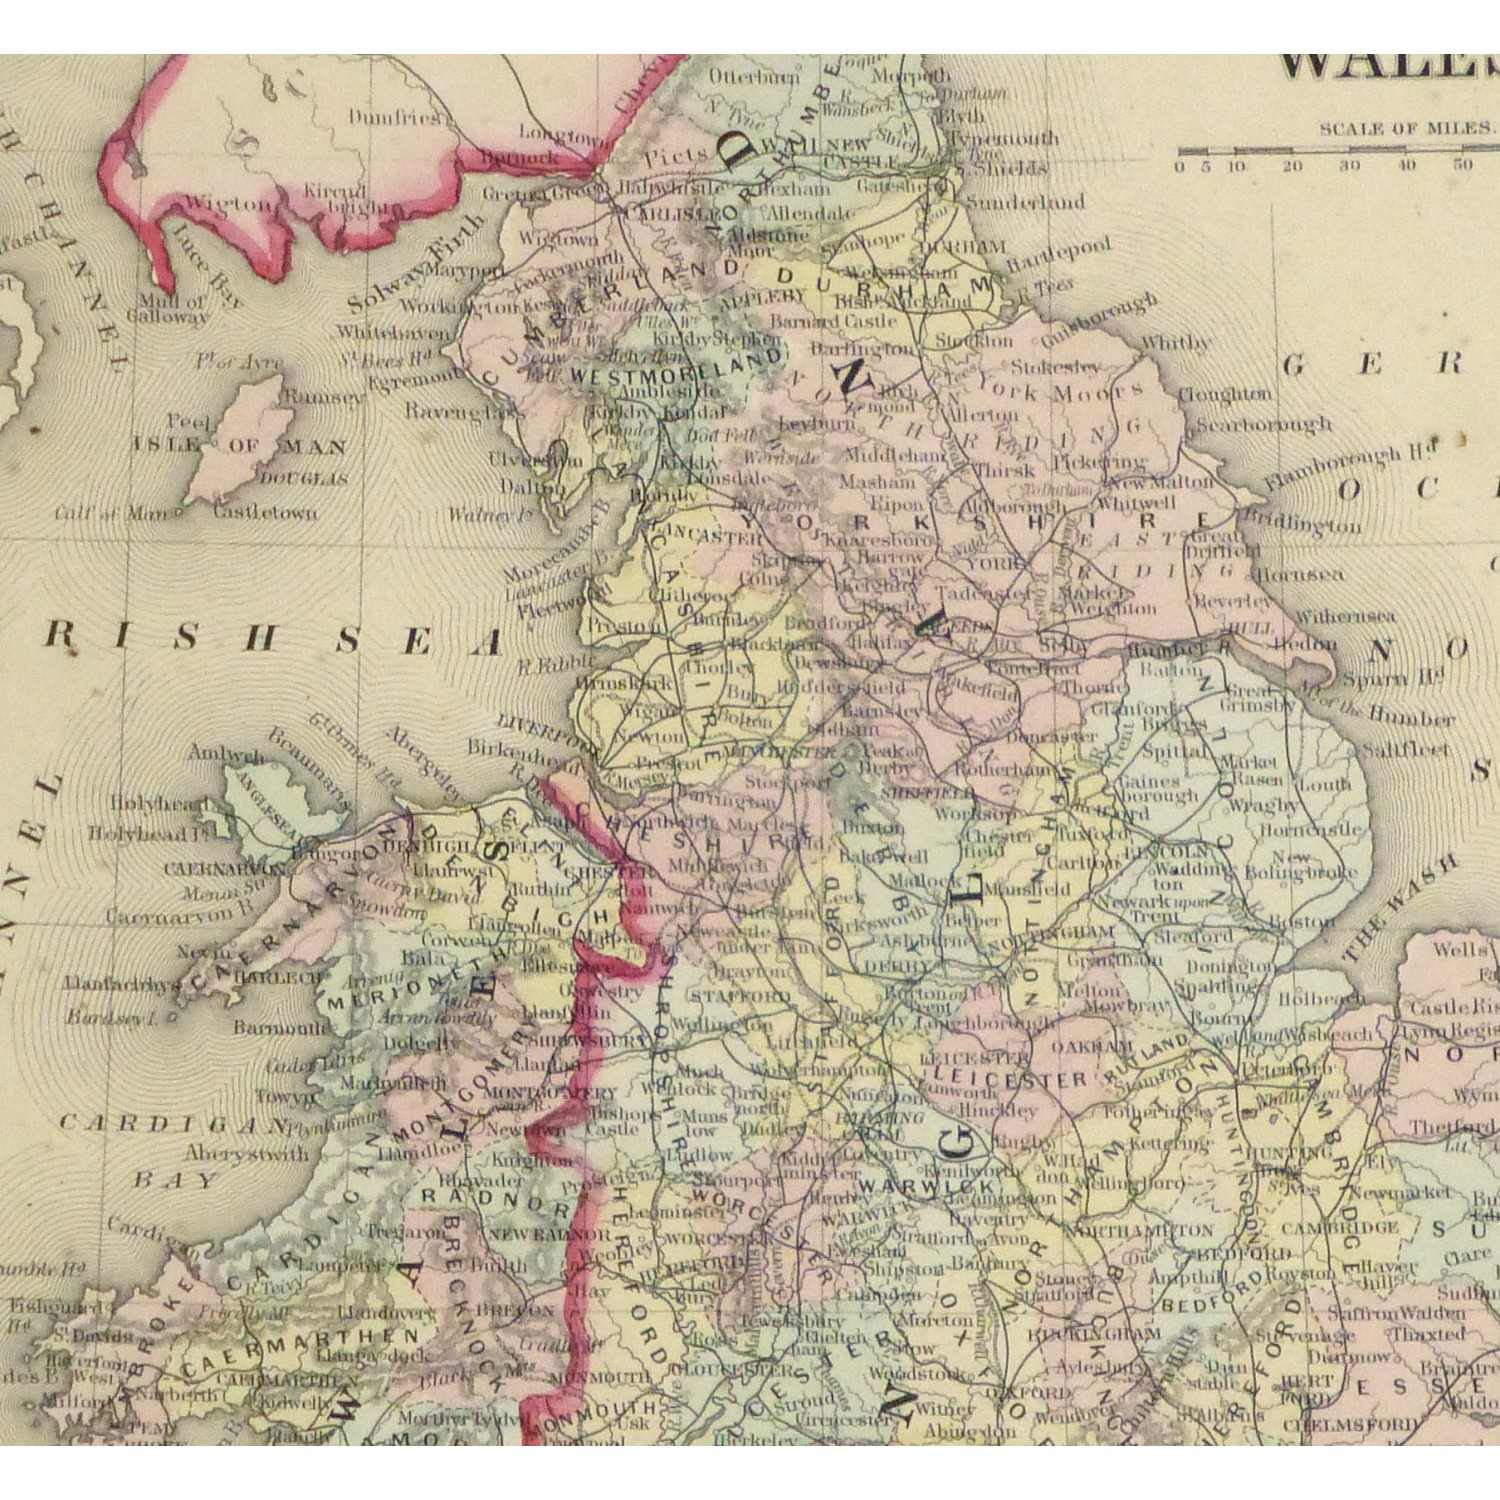 Original Antique Map England and Wales - detail - 9262m